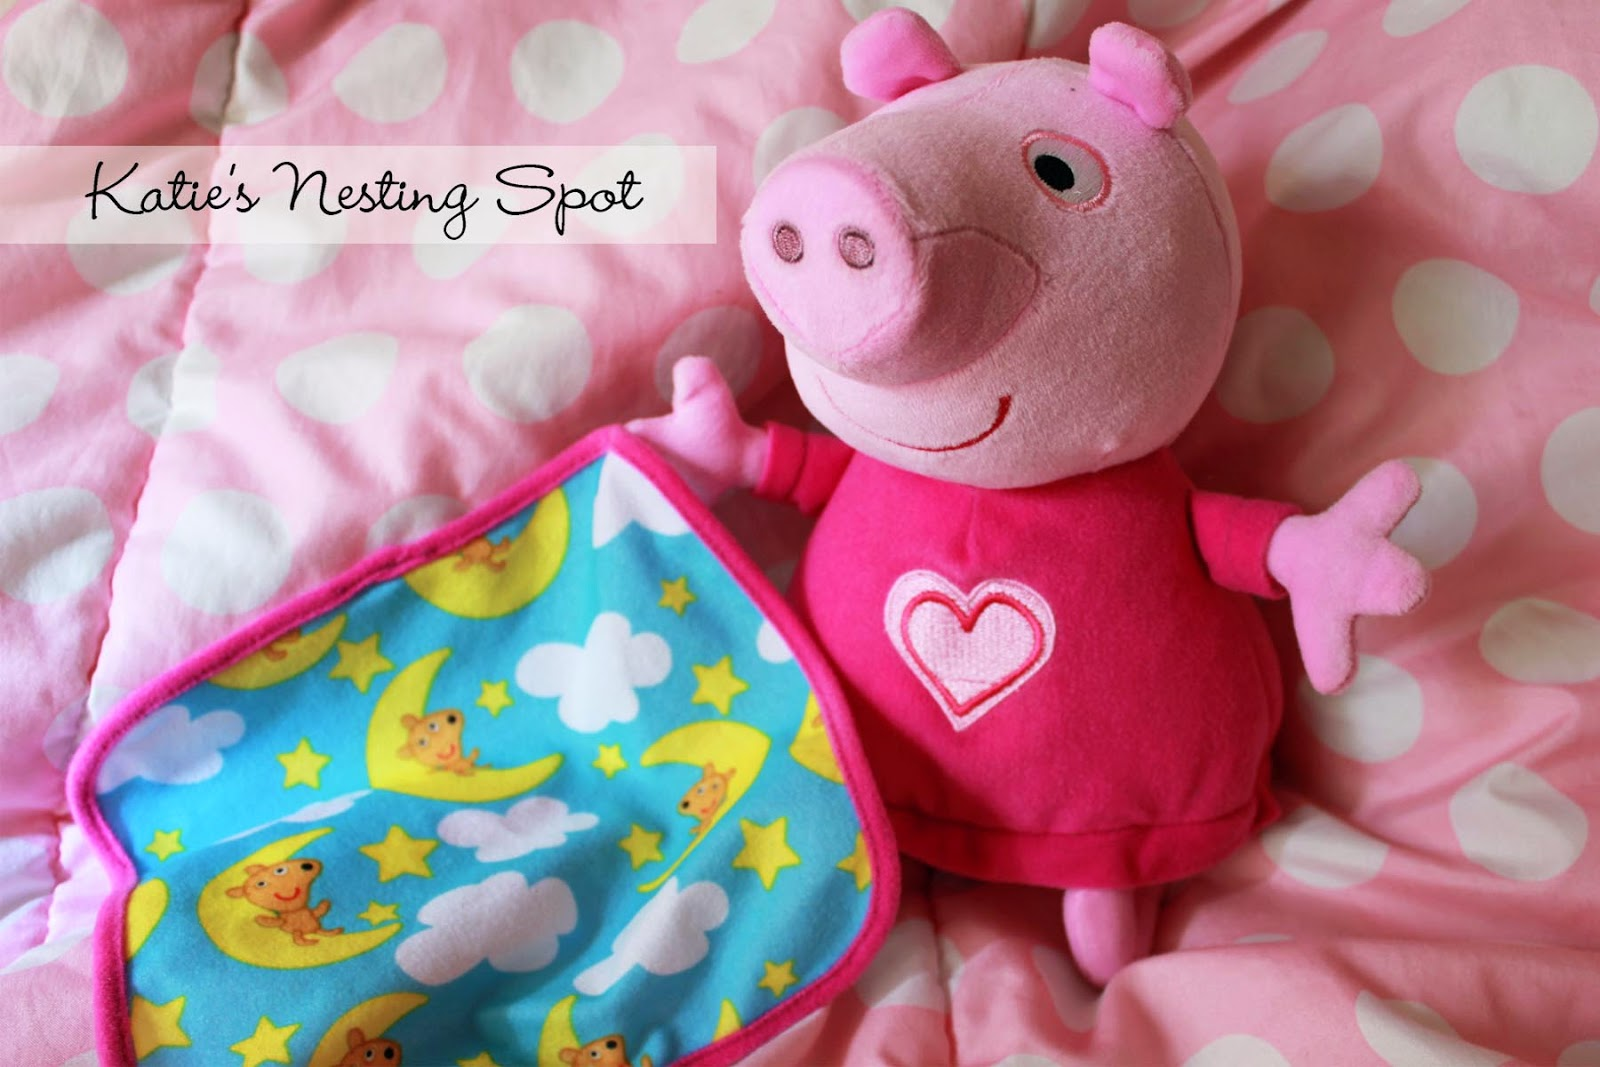 Peppa Pig Toys : Katie s nesting spot new peppa pig toys book and app